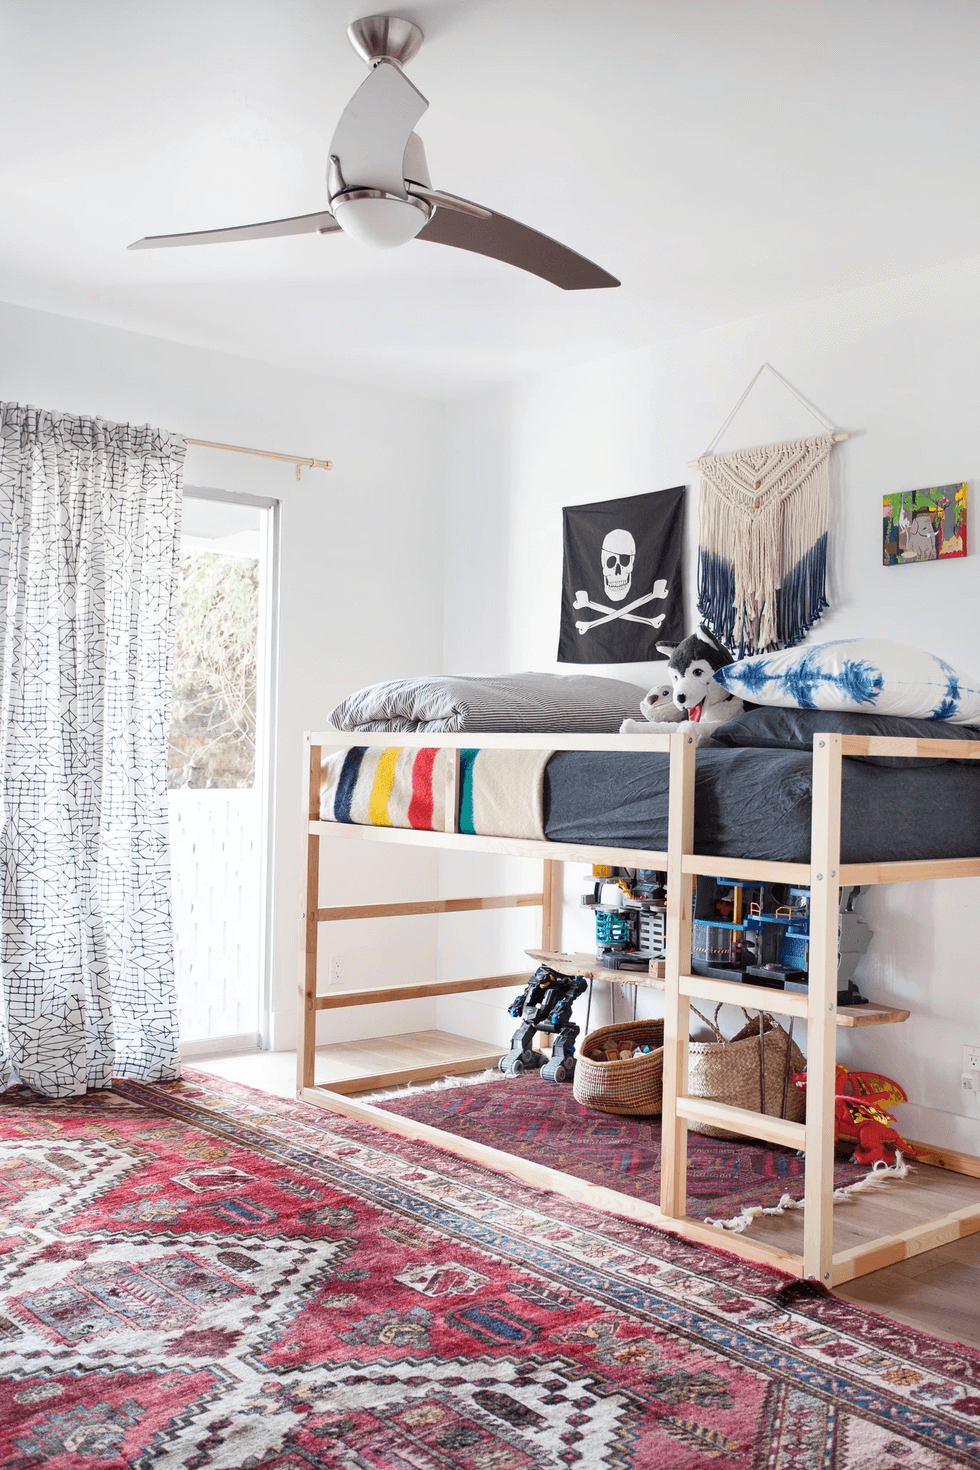 The bottom bunk - Clever DIY Toy Storage & Organization Ideas & Projects For Kids